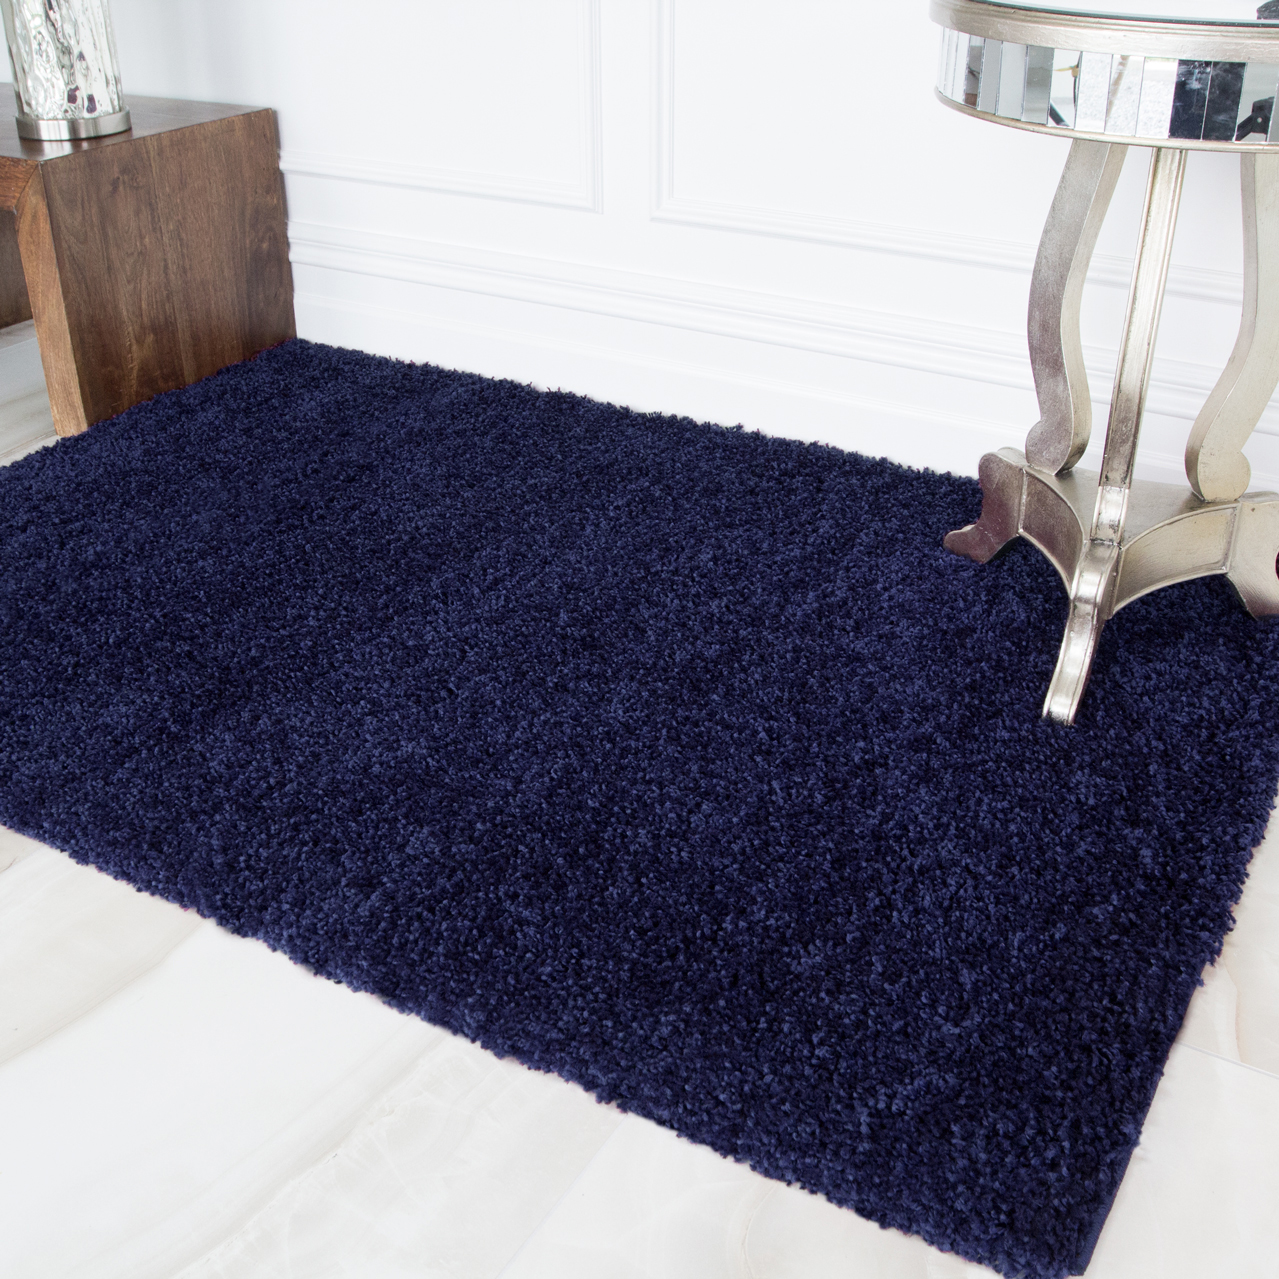 Navy Blue Shaggy Rug - Vancouver